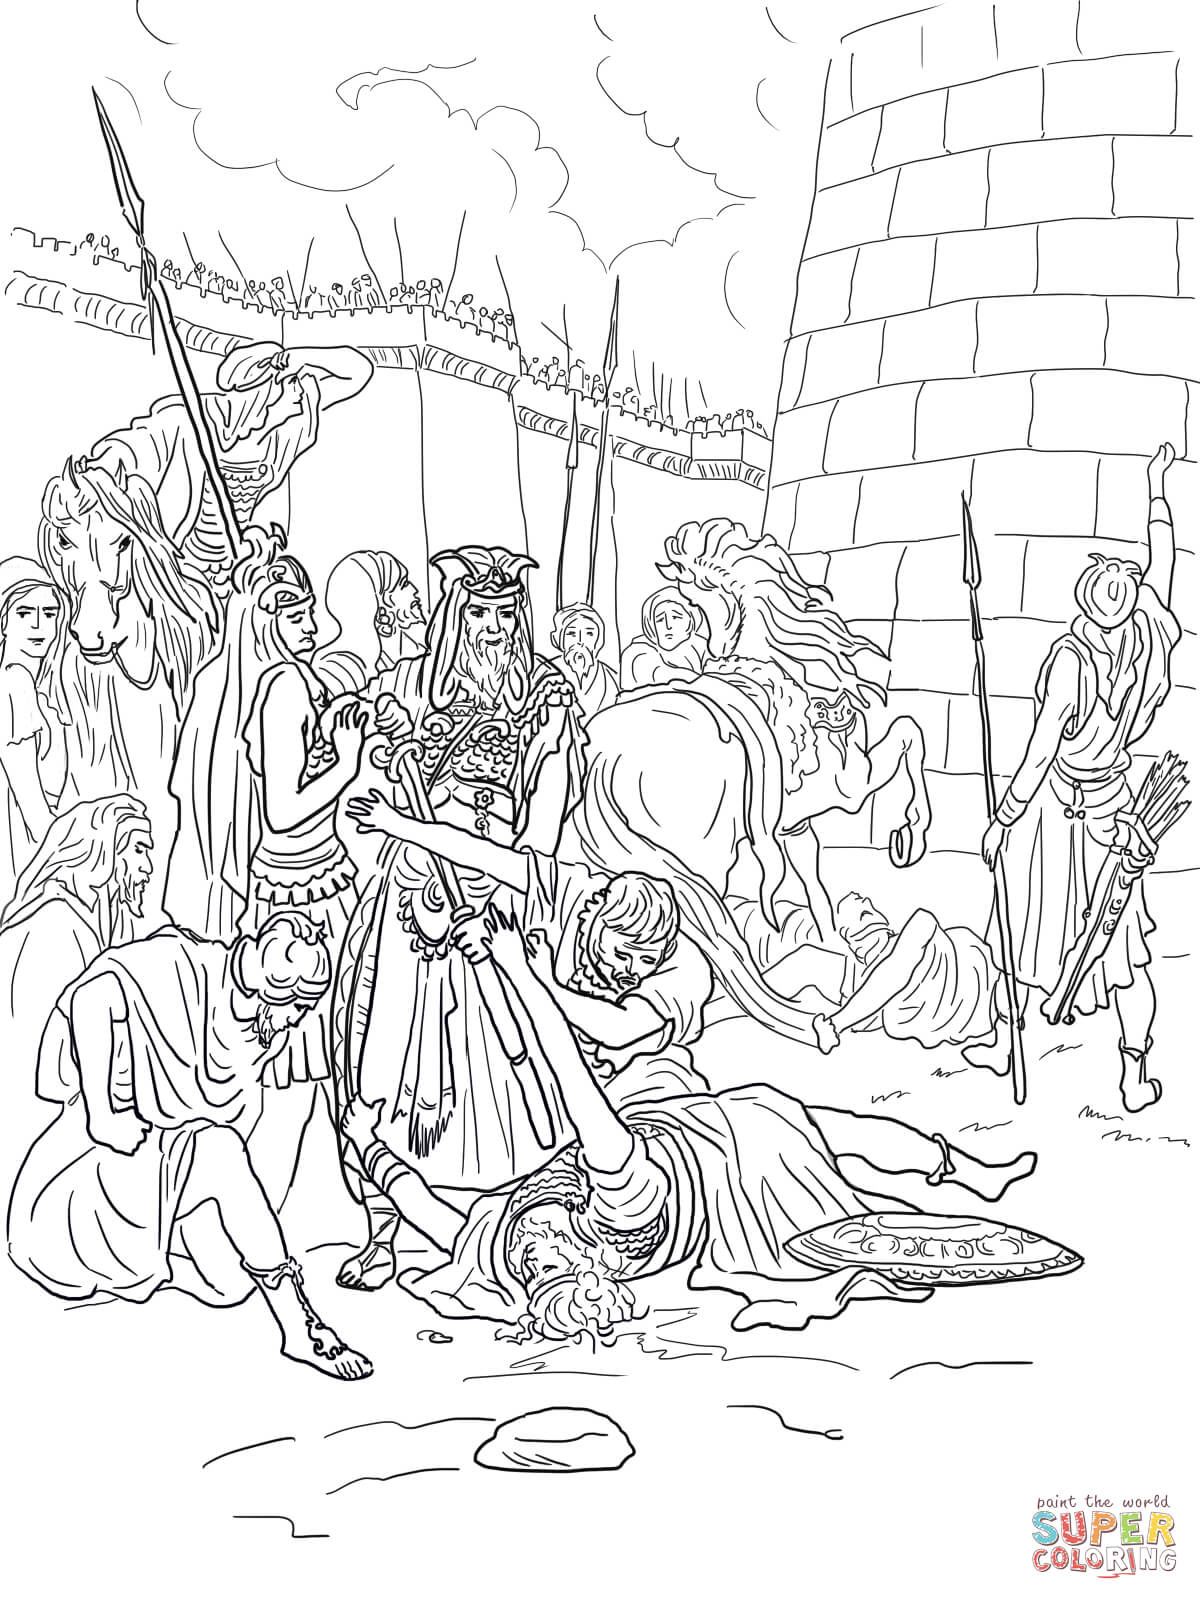 The Of Abimelech Coloring Page